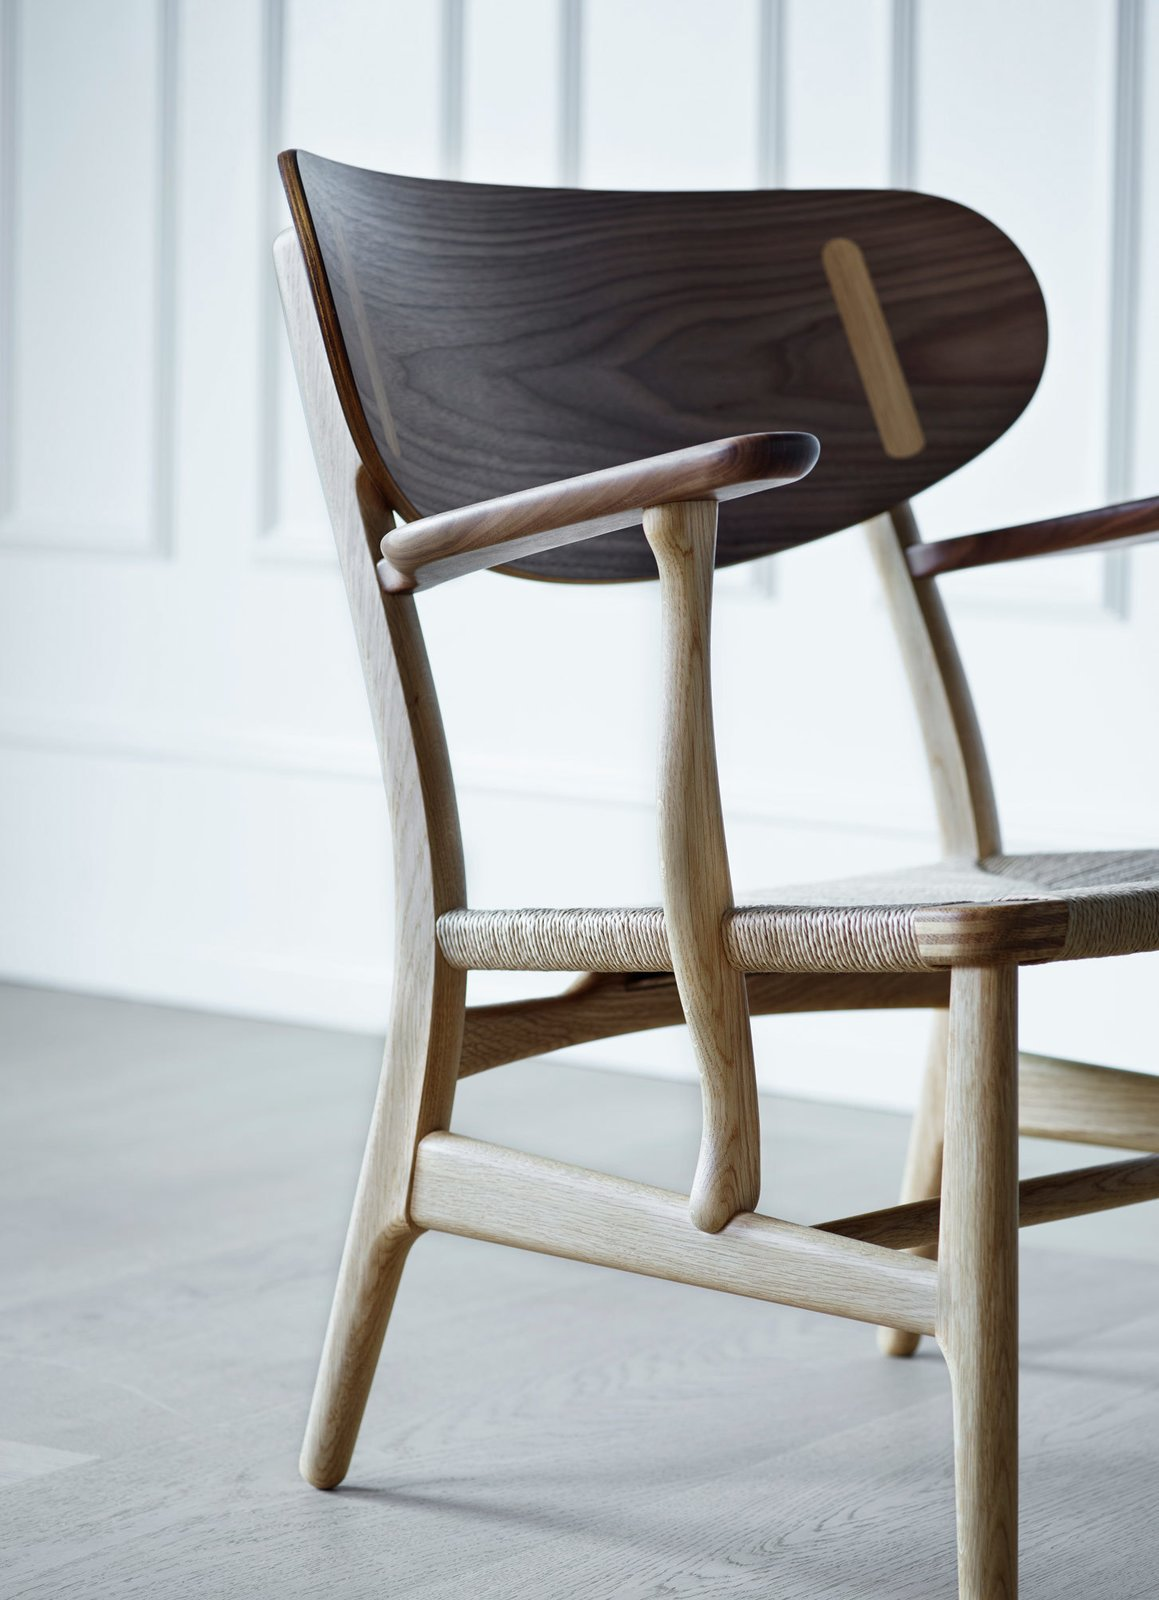 Photo 3 of 7 in CH23 And CH22 Chairs By Hans J. Wegner